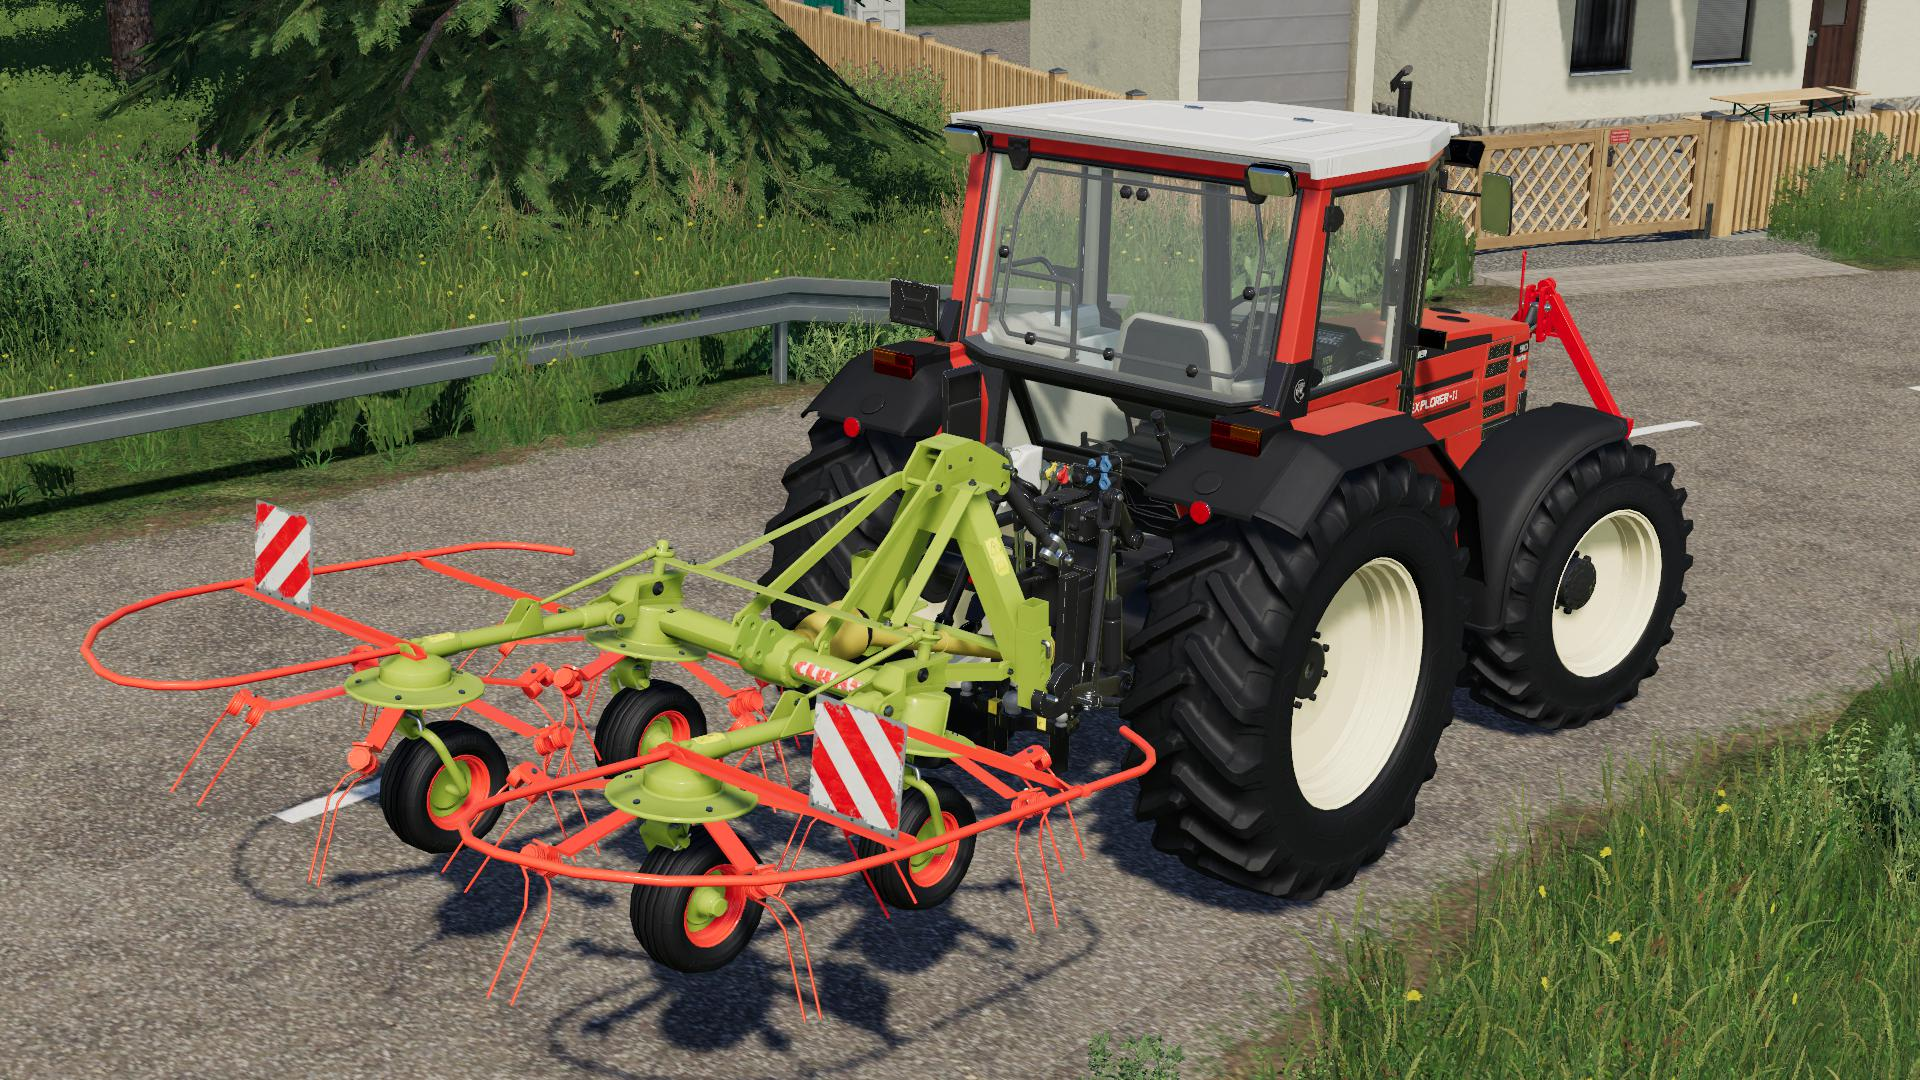 MOД CLAAS WA 450 V1.0.0.0 для Farming Simulator 2019